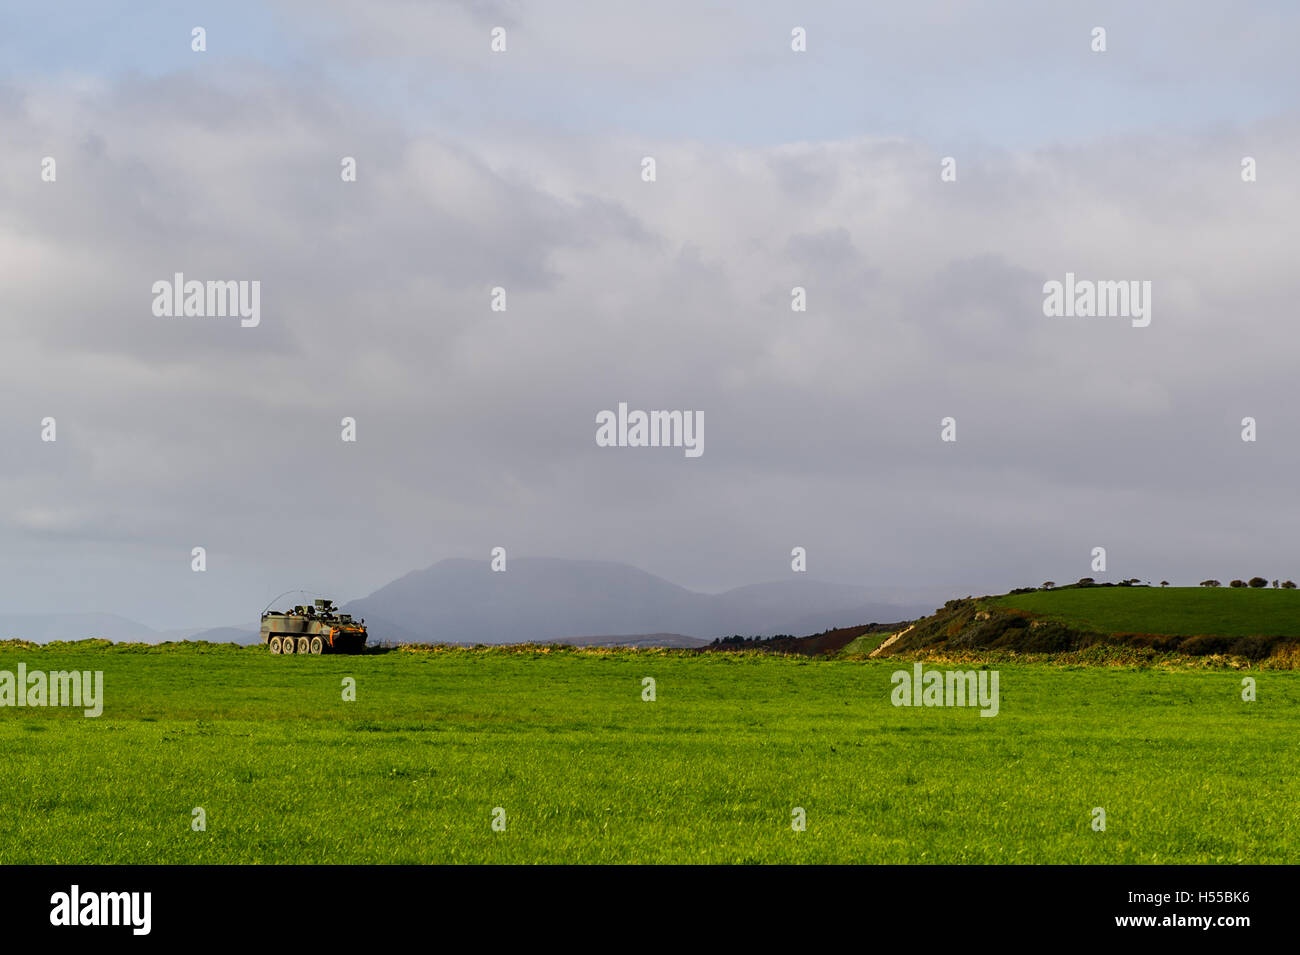 Mowag APC of the Irish Army patrols Bantry Airstrip, County Cork, Ireland during an exercise with copy space. - Stock Image